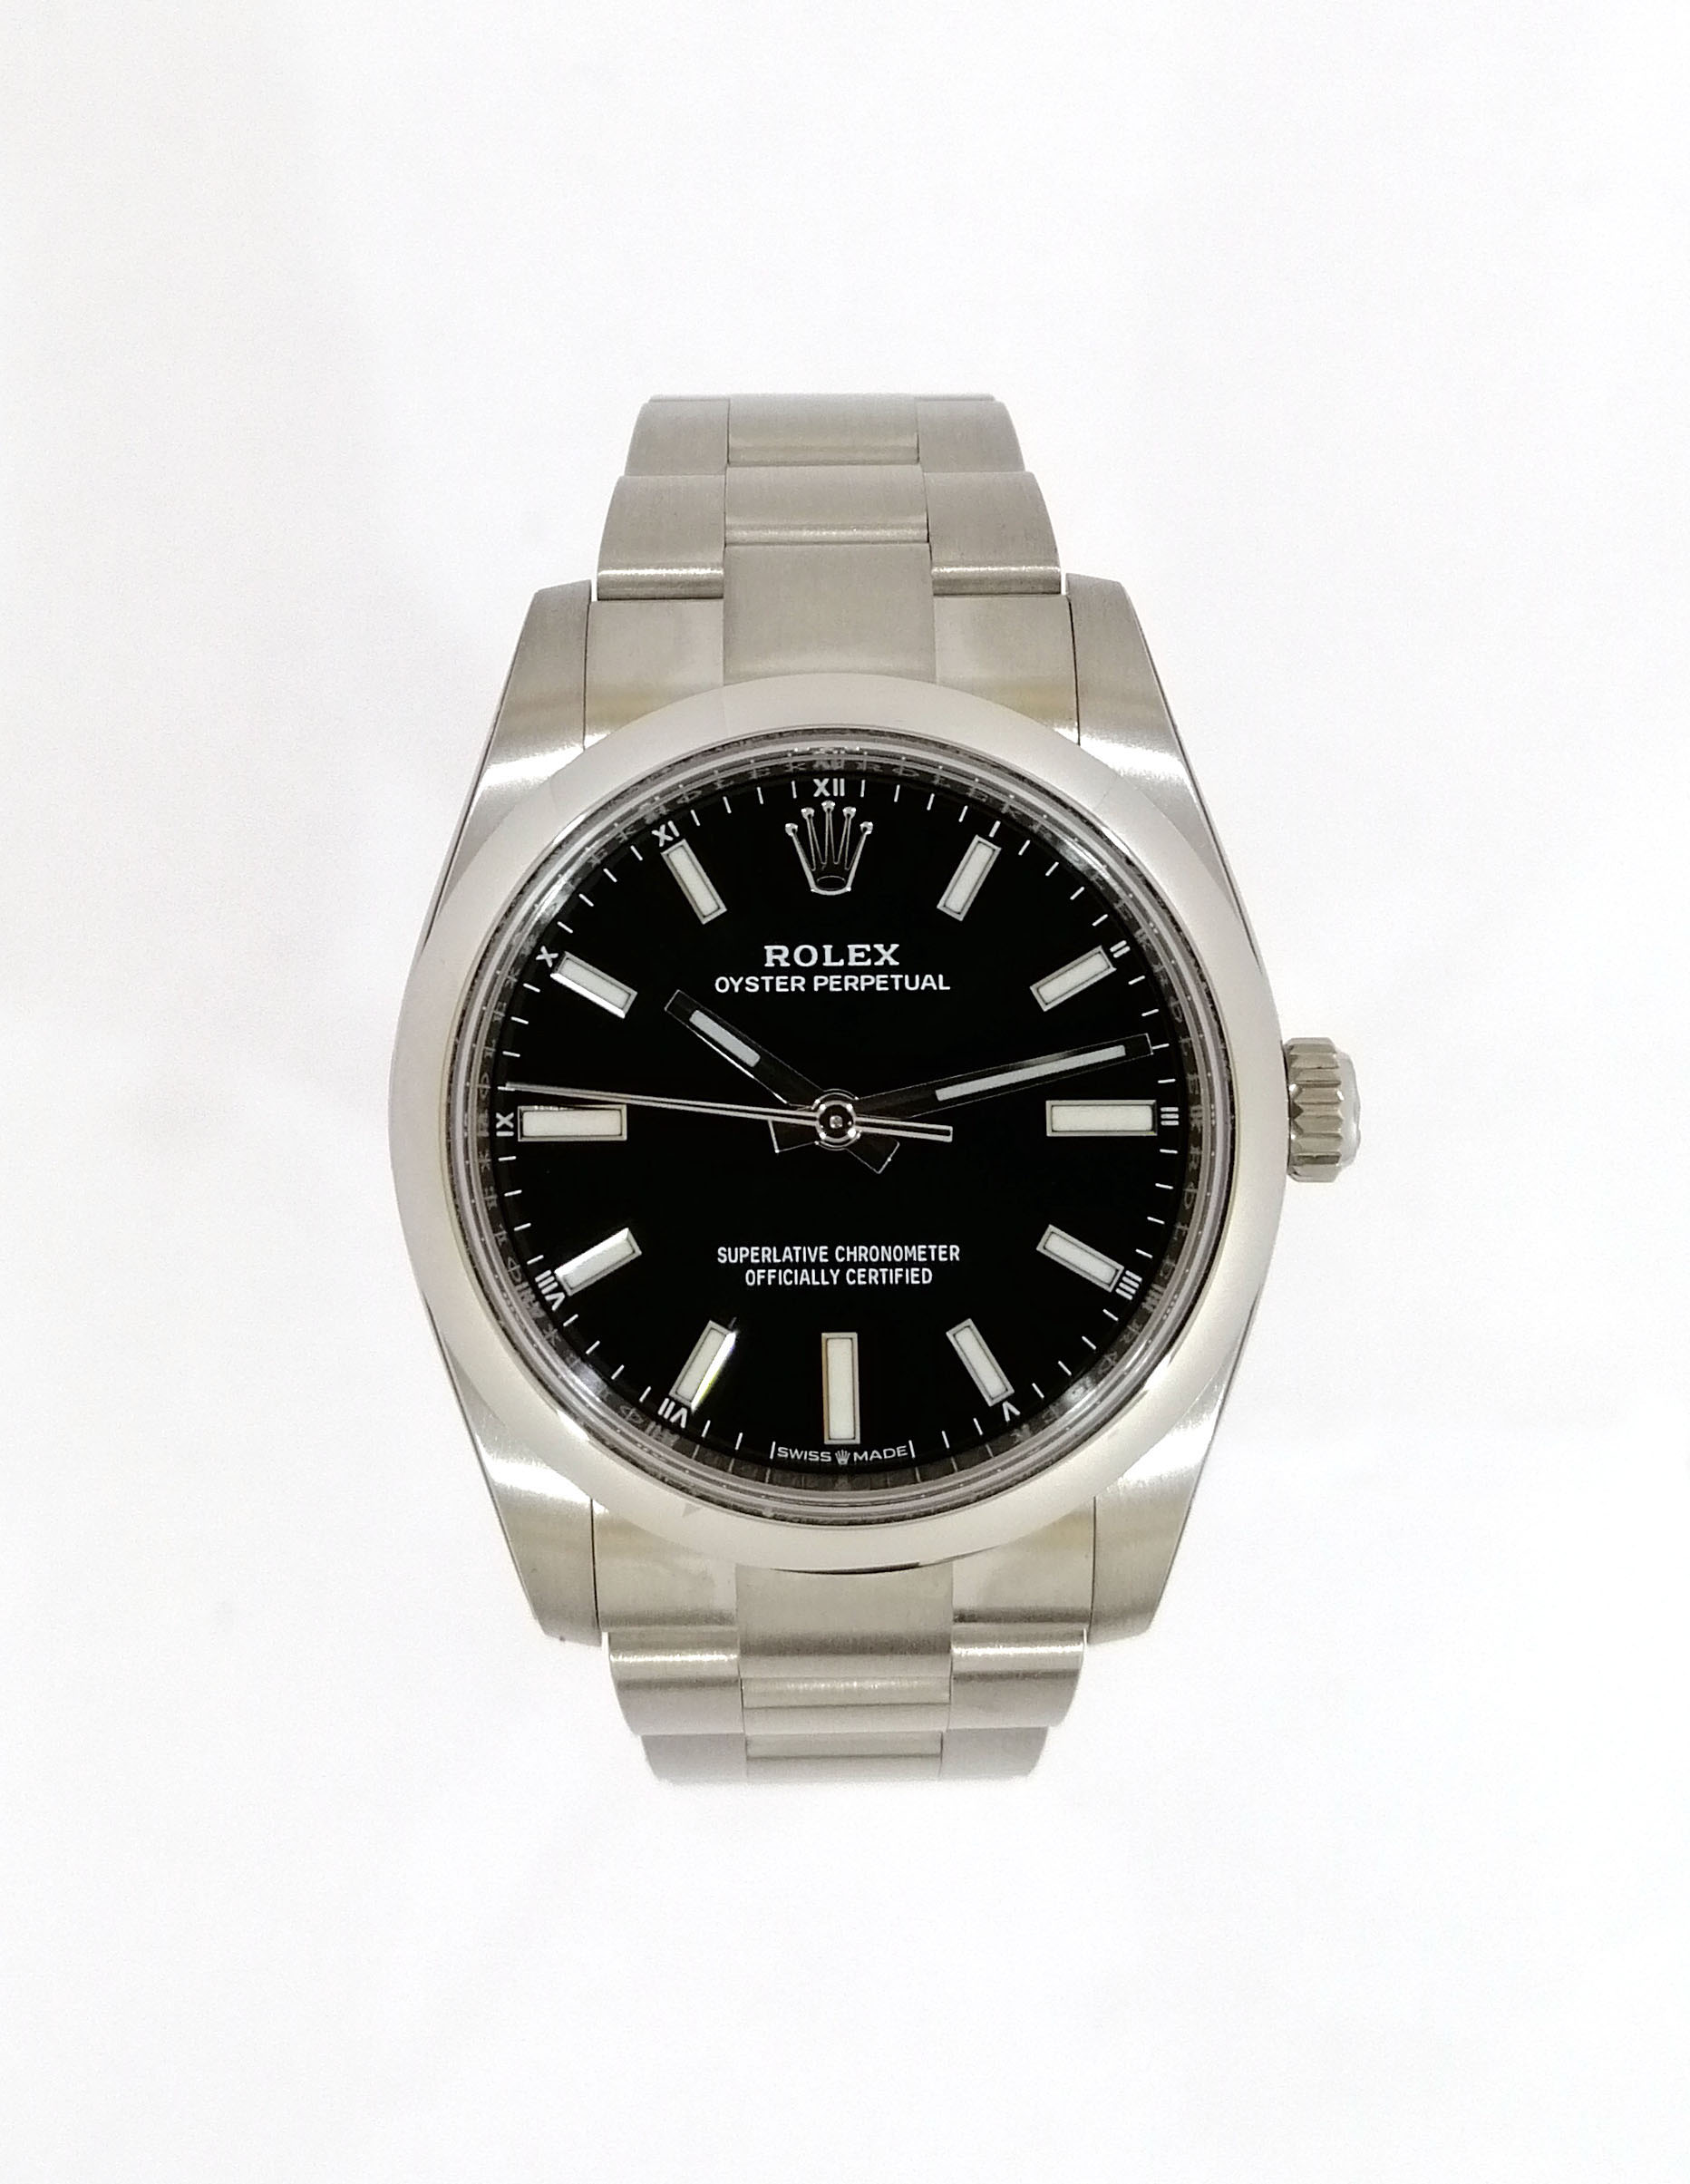 Rolex Oyster Perpetual 34 124200